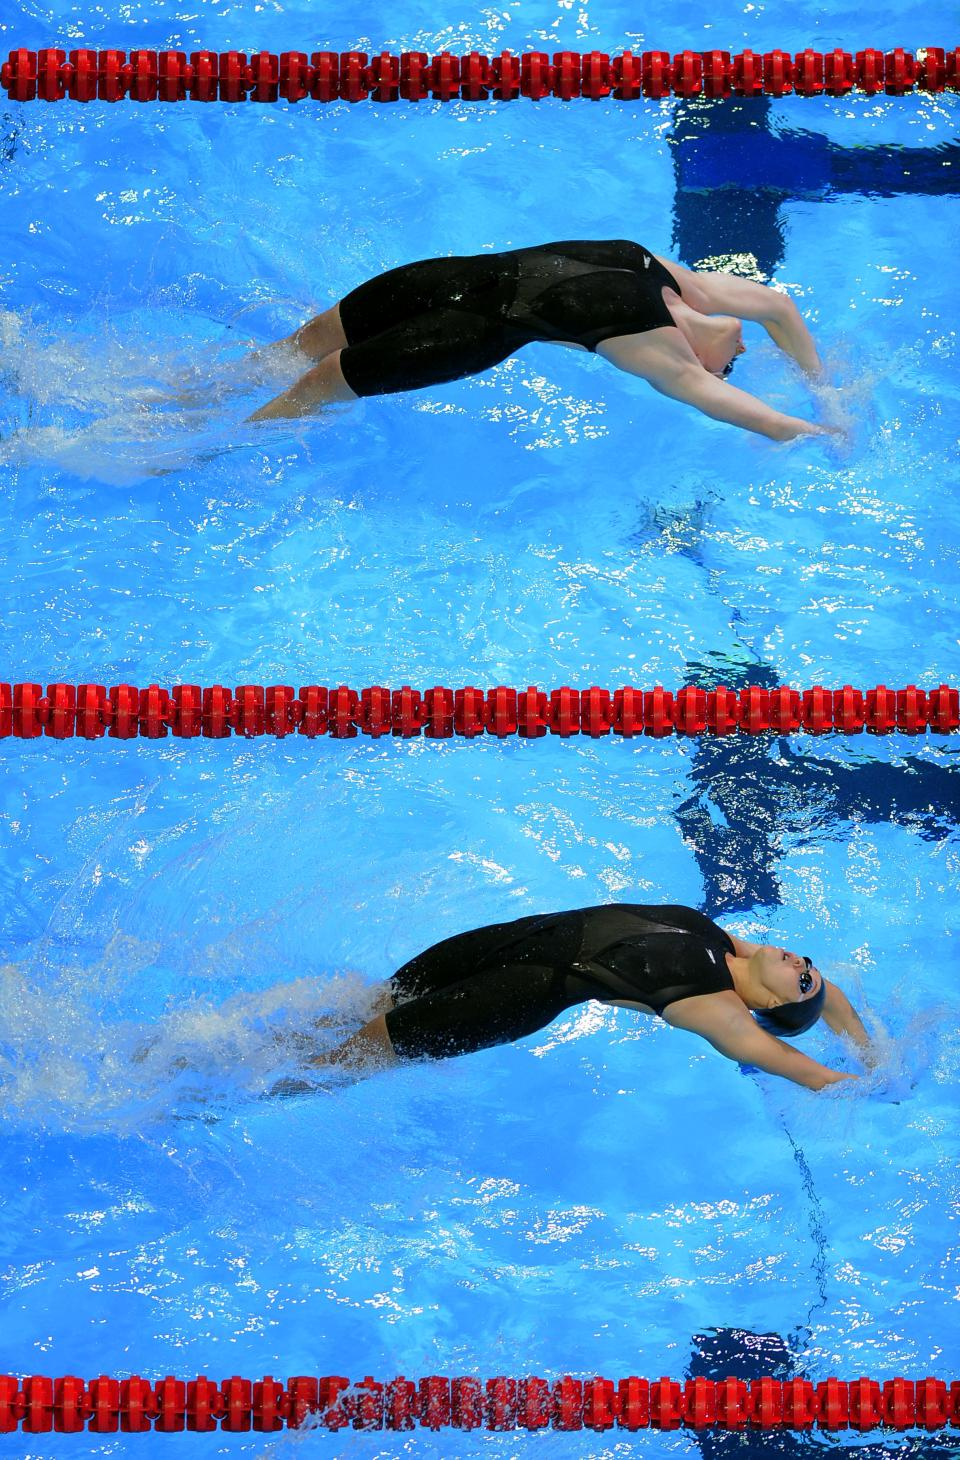 Jennifer Connolly and Rachel Bootsma, from top, start in the women's 100-meter backstroke preliminaries at the U.S. Olympic swimming trials, Tuesday, June 26, 2012, in Omaha, Neb. (AP Photo/Mark J. Terrill)